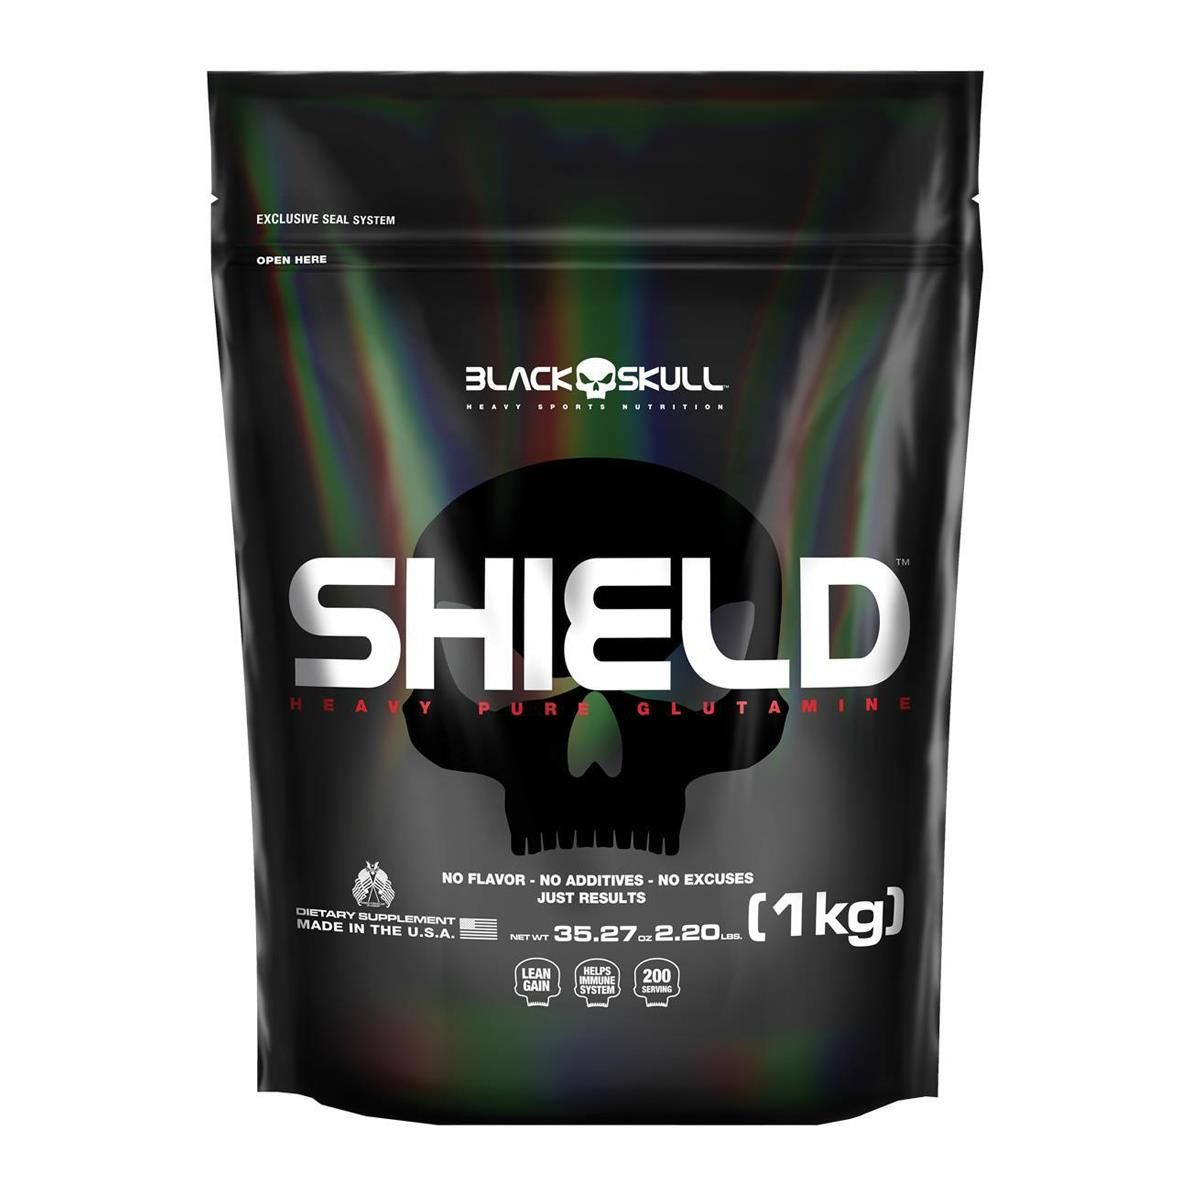 Shield Heavy Pure Glutamine (1Kg) - Black Skull